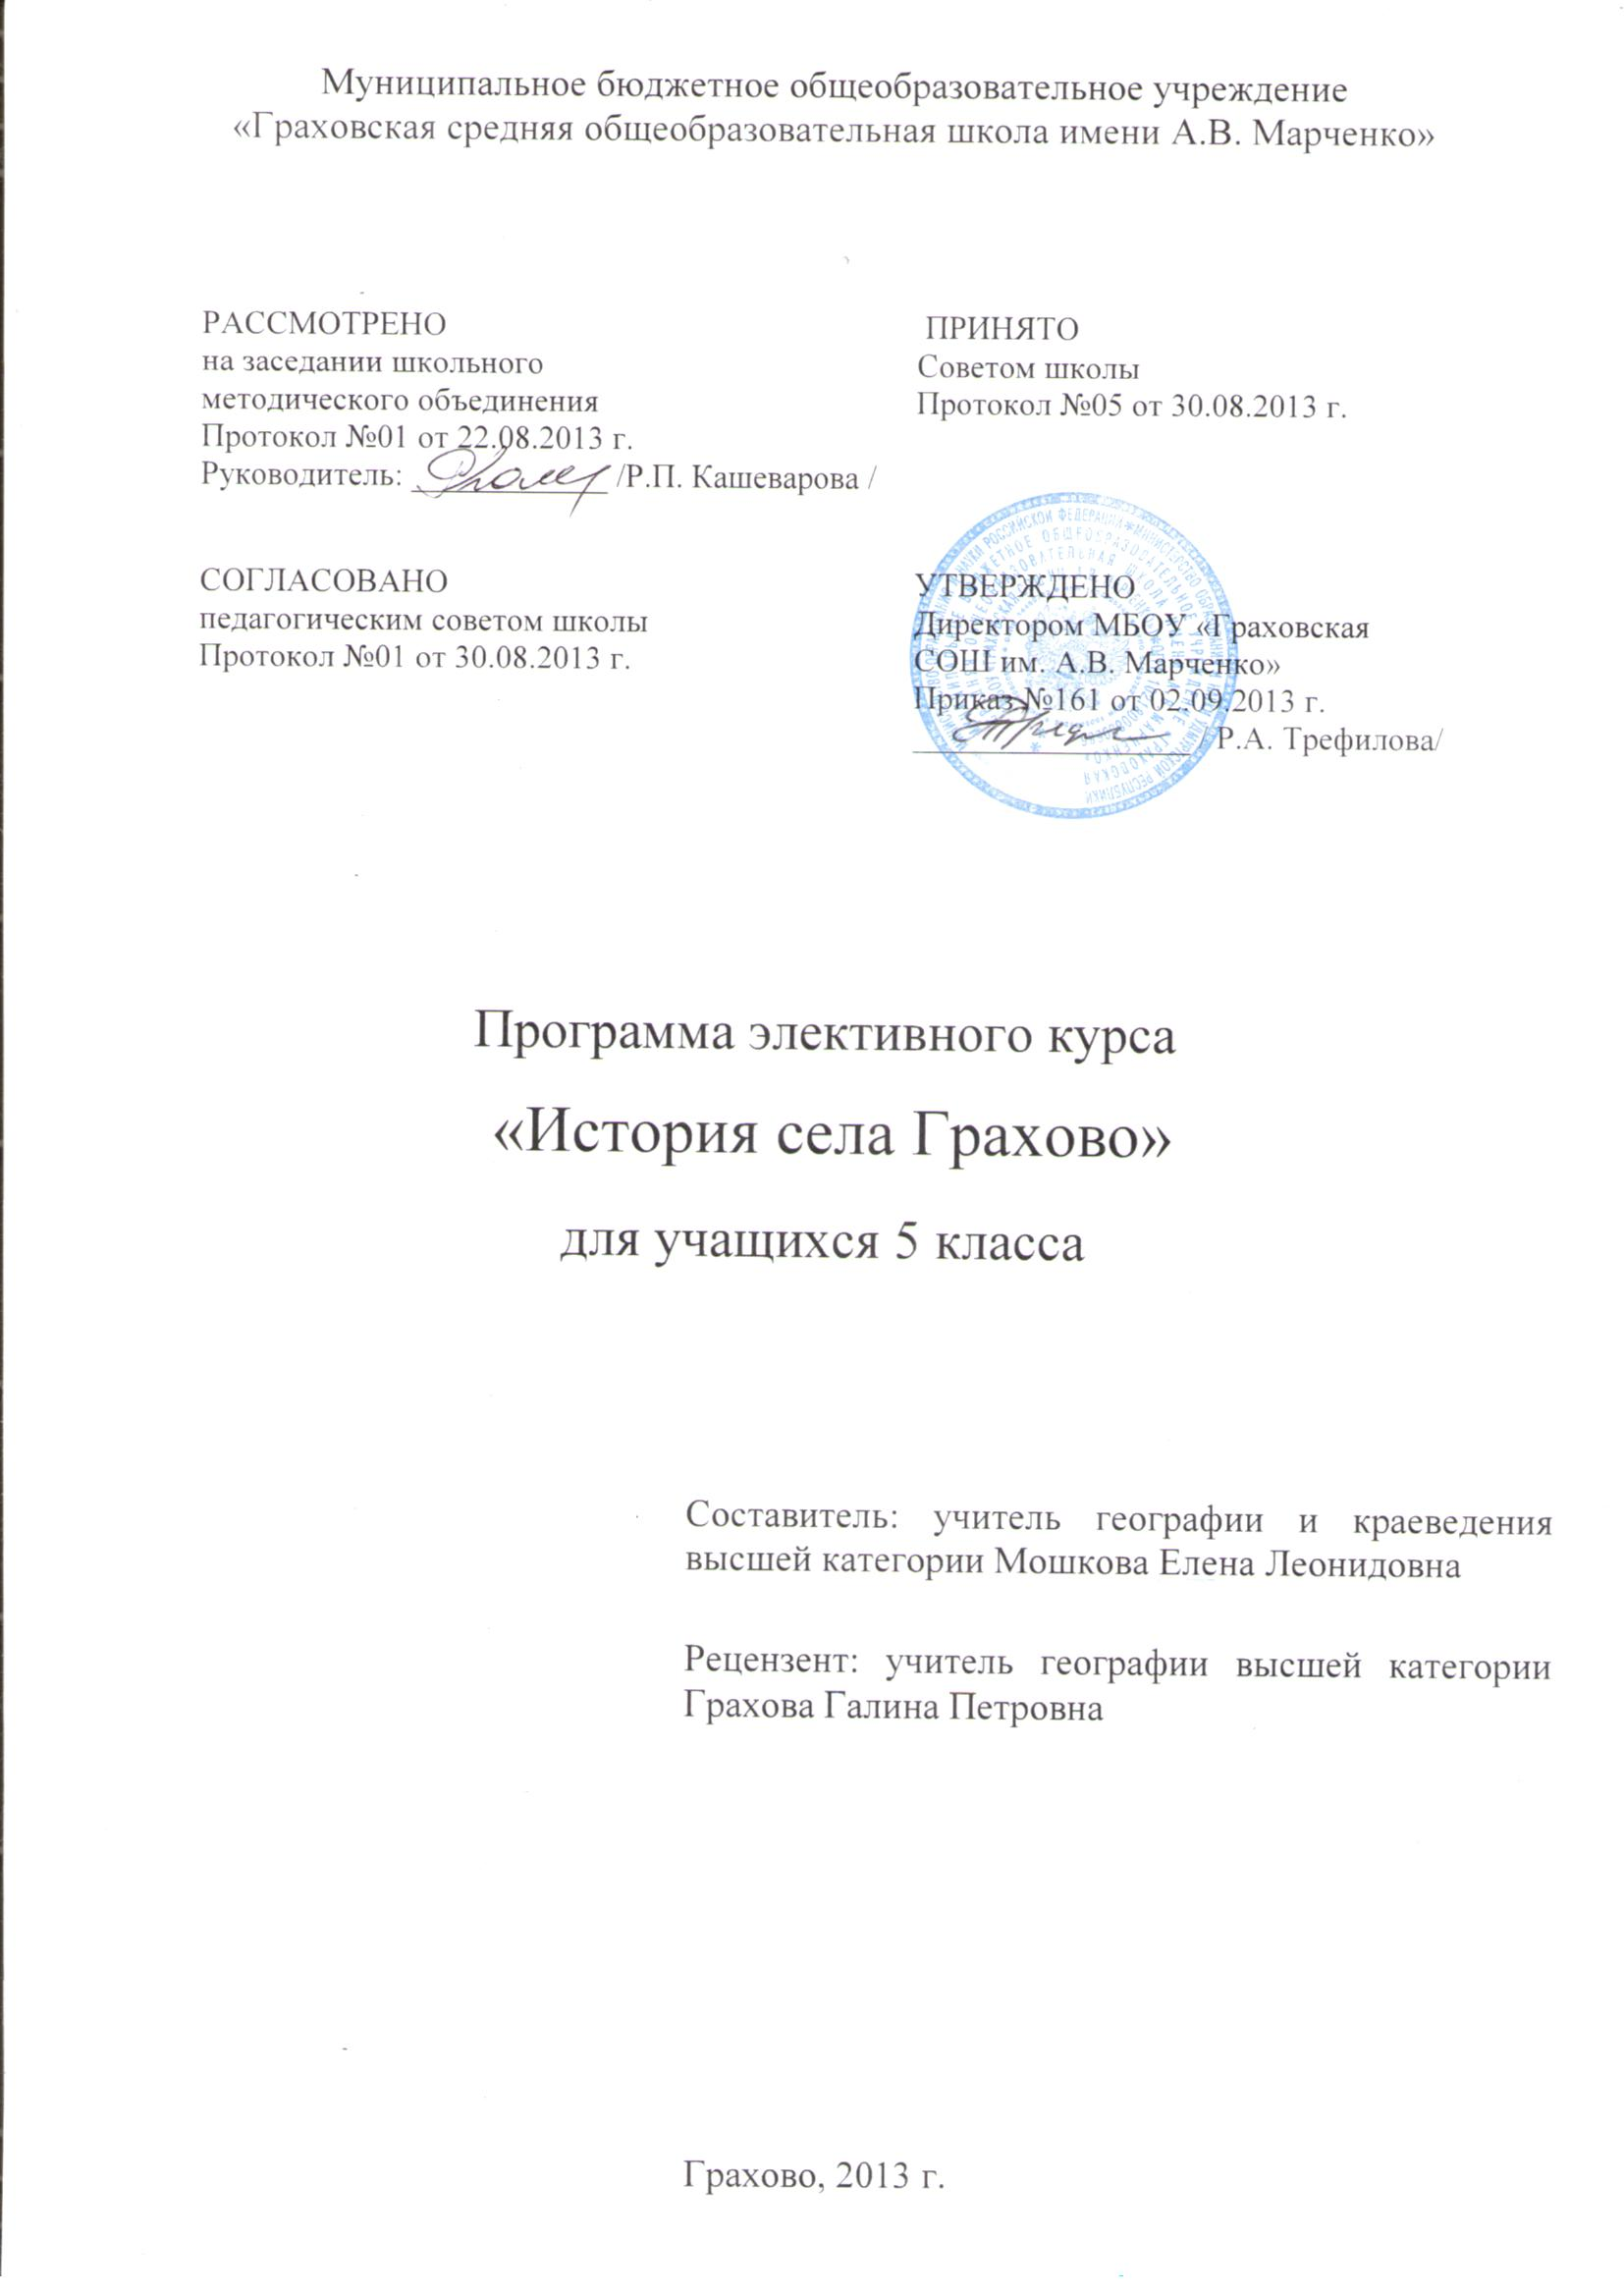 C:\Users\Raybook\Documents\ScanTo\Document_295.tif